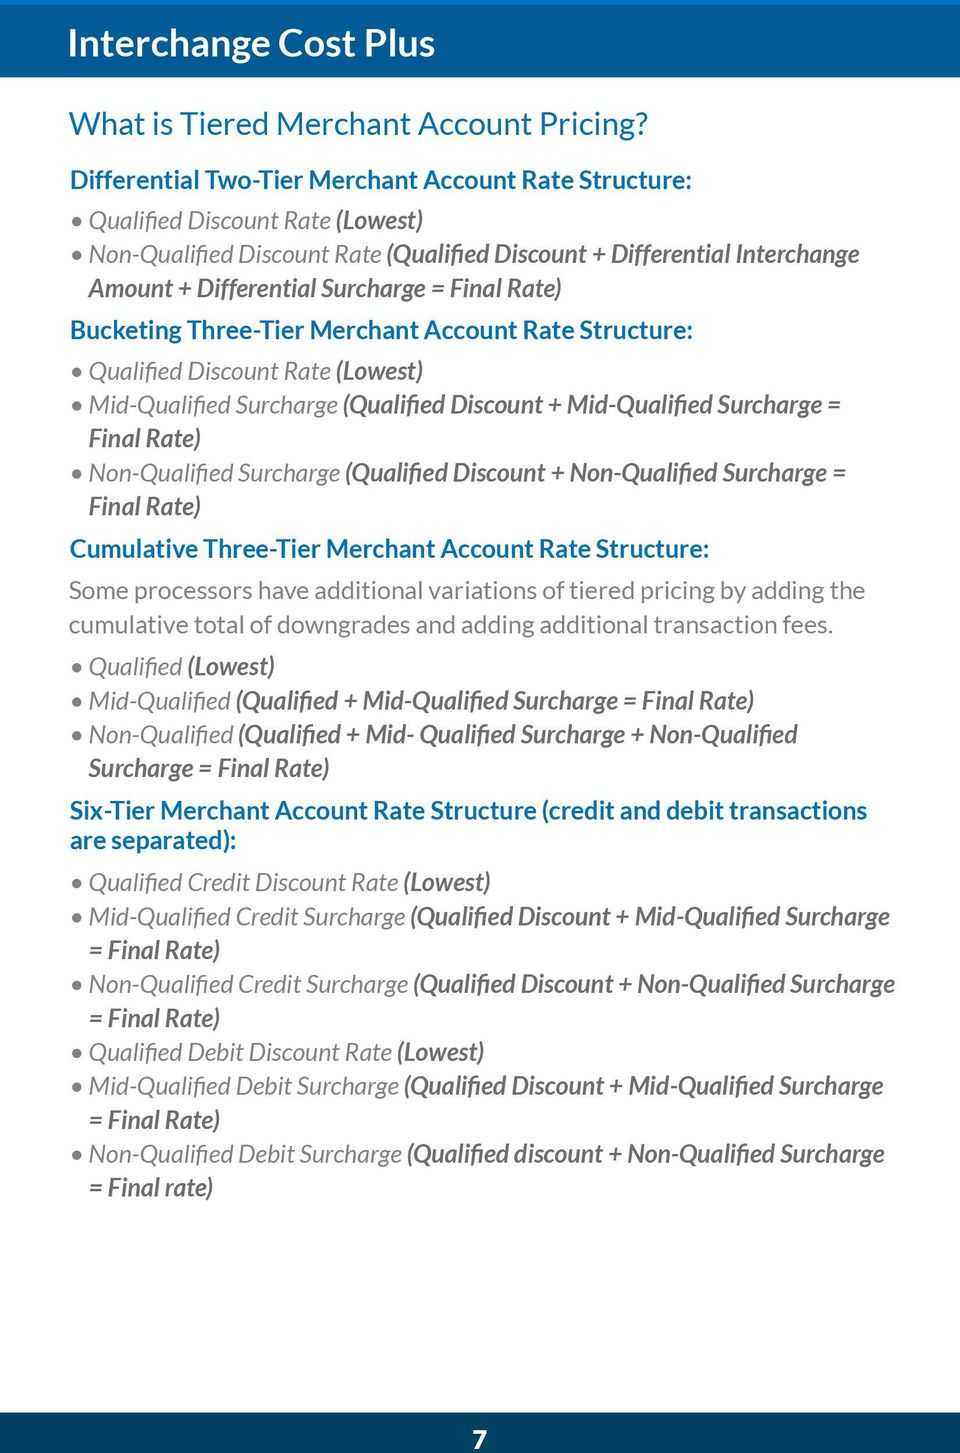 Final Rate) Bucketing Three-Tier Merchant Account Rate Structure: Qualified Discount Rate (Lowest) Mid-Qualified Surcharge (Qualified Discount + Mid-Qualified Surcharge = Final Rate) Non-Qualified